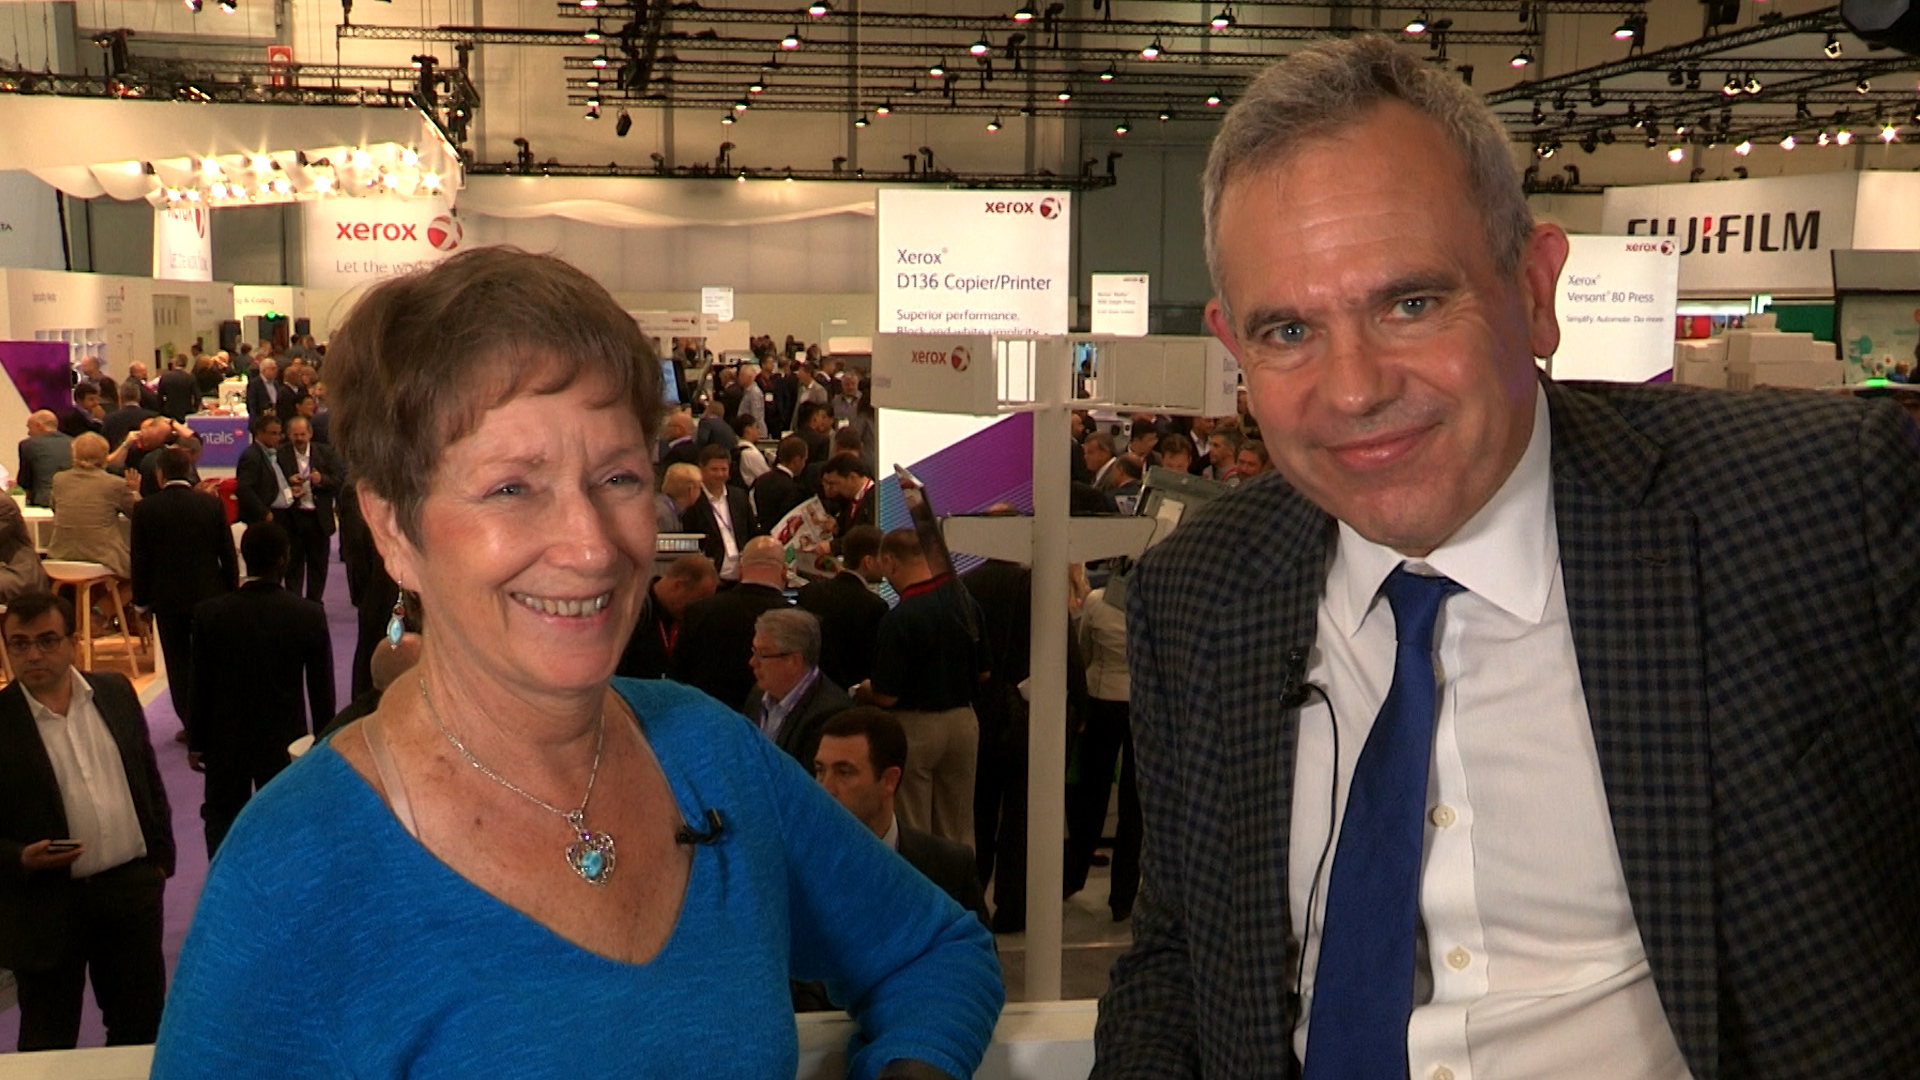 Xerox's Robert Stabler Shares the Xerox Experience at drupa